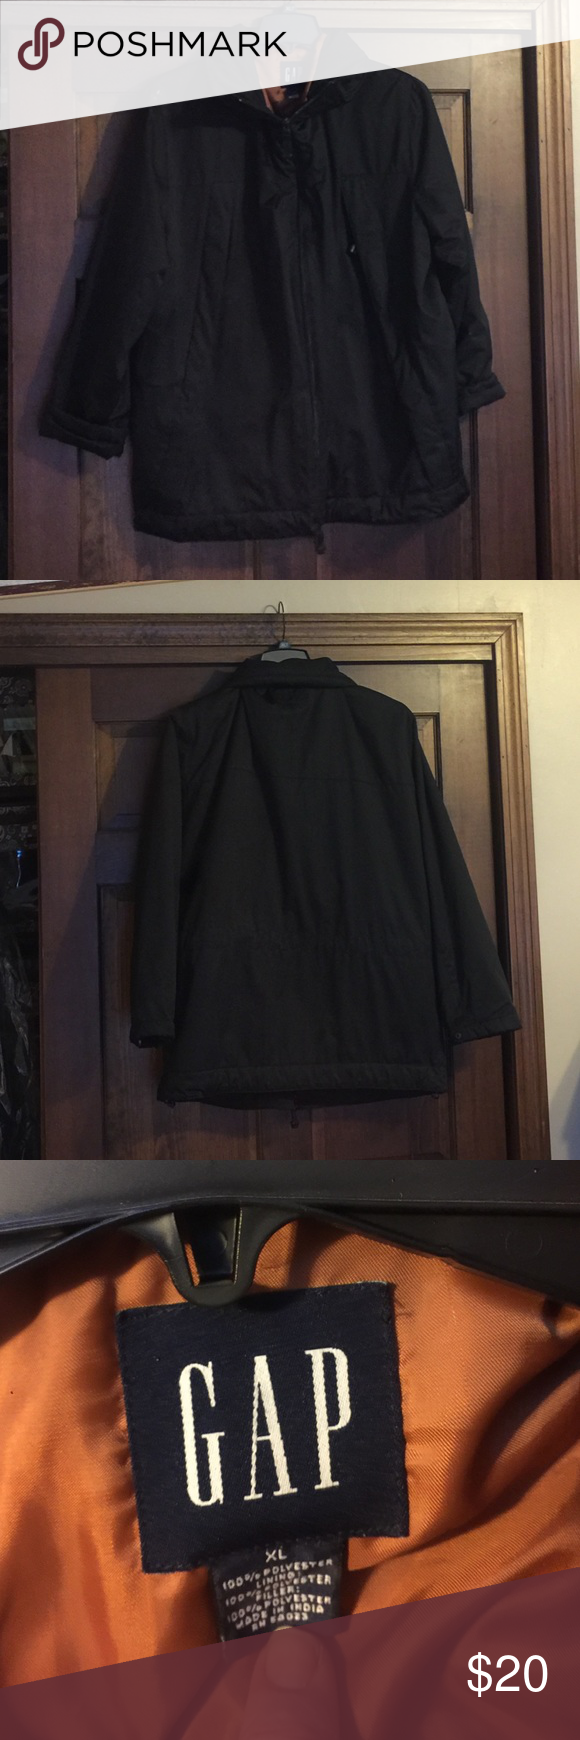 Mens Gap XL jacket Black men's jacket! Medium to winter weight, like new condition! Multiple pockets, cinch on the inside to keep snow/wind out, button closures on sleeves and drawstring bottom! Nice layering coat for skiing 🎿 Jackets & Coats Performance Jackets